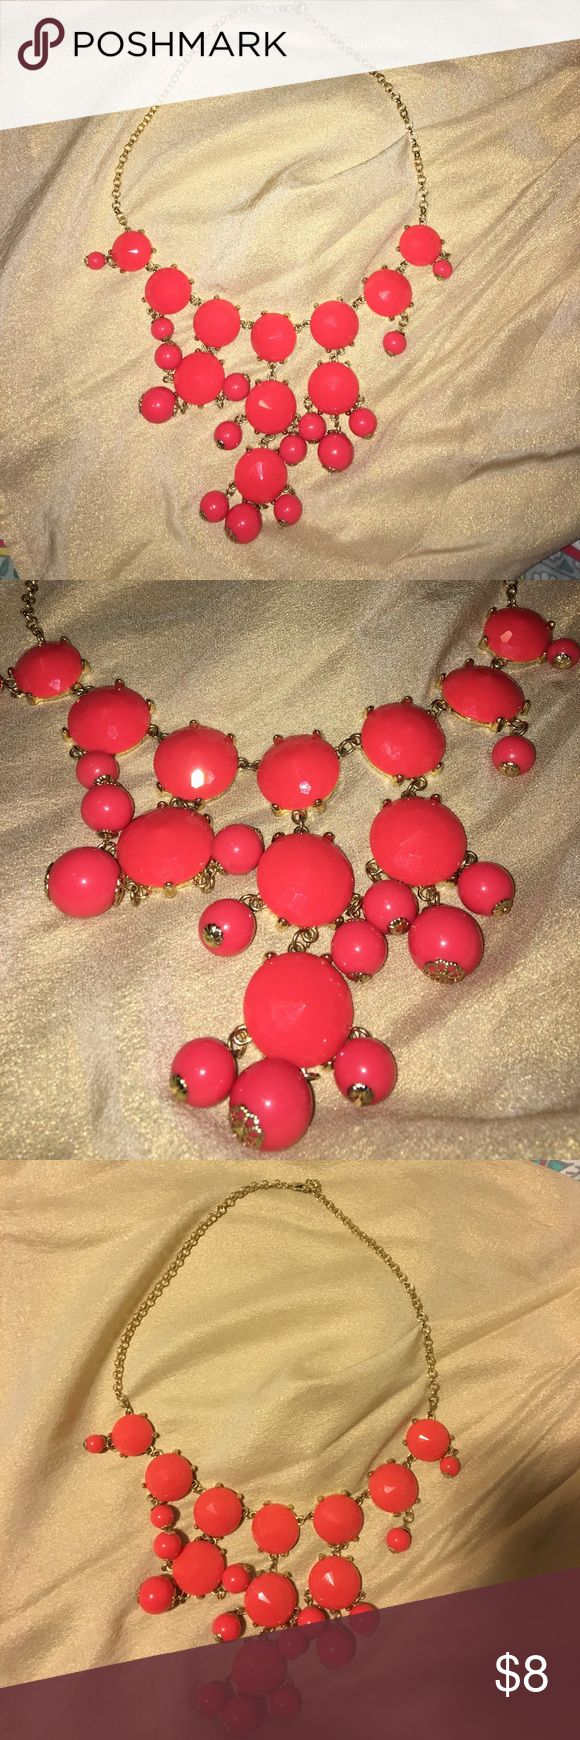 Coral Bubble Necklace Coral and gold bubble necklace Jewelry Necklaces